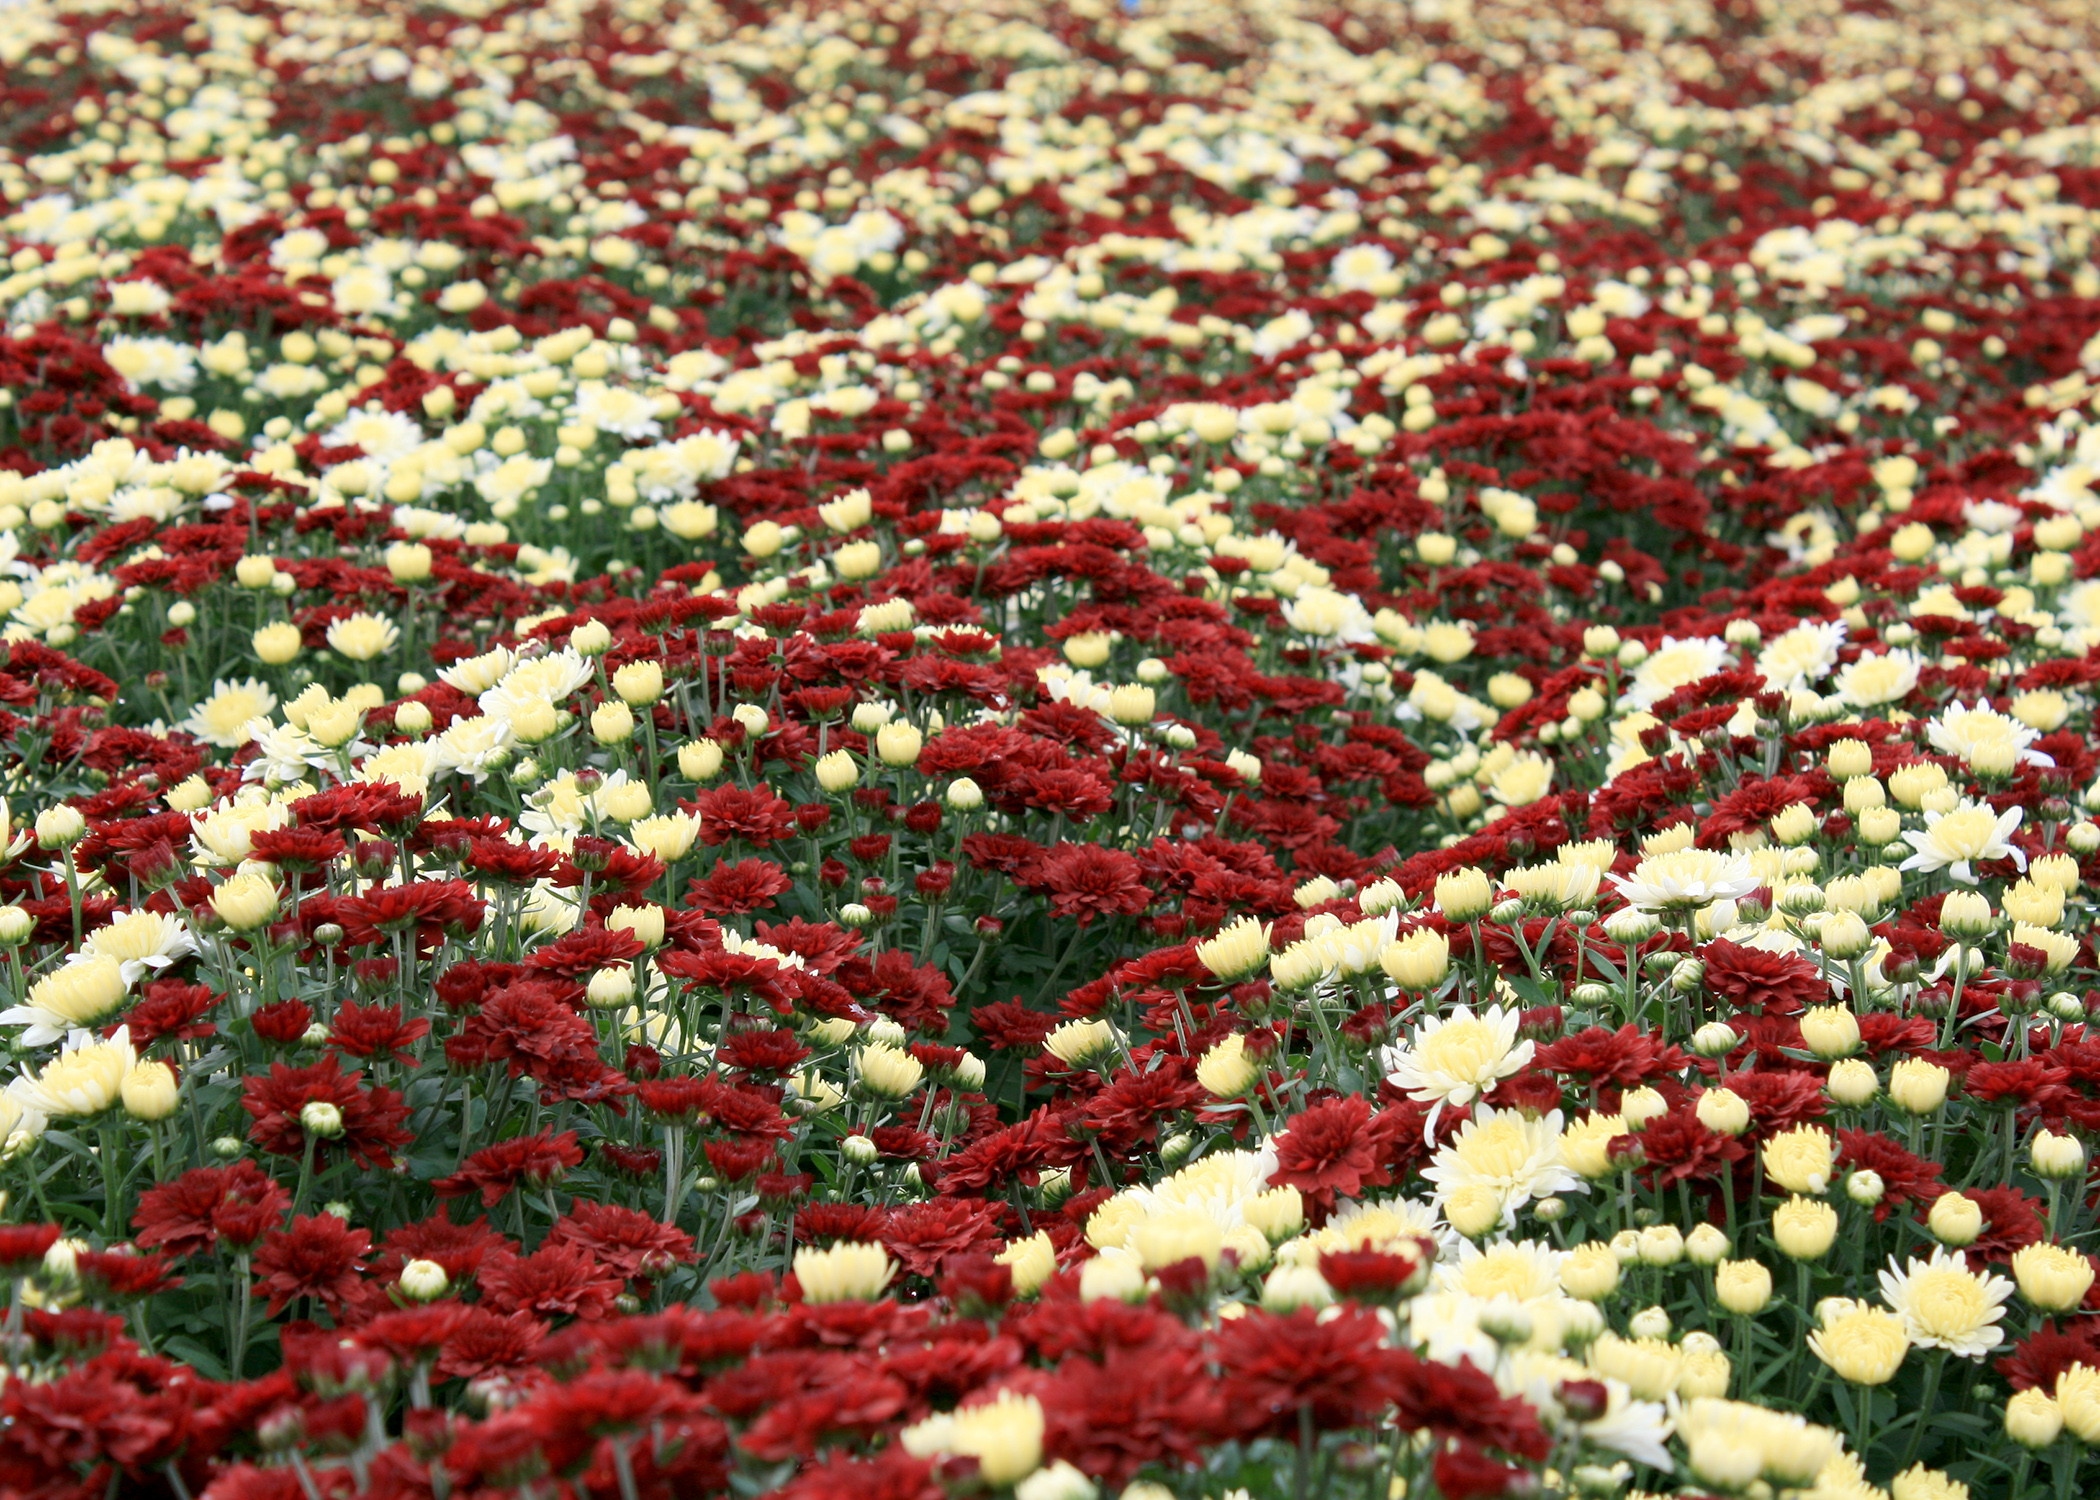 Fall mums in full flower have an instant impact for any autumn event. Their many warm colors can complement almost any home color scheme. (Photo by MSU Extension/Gary Bachman)